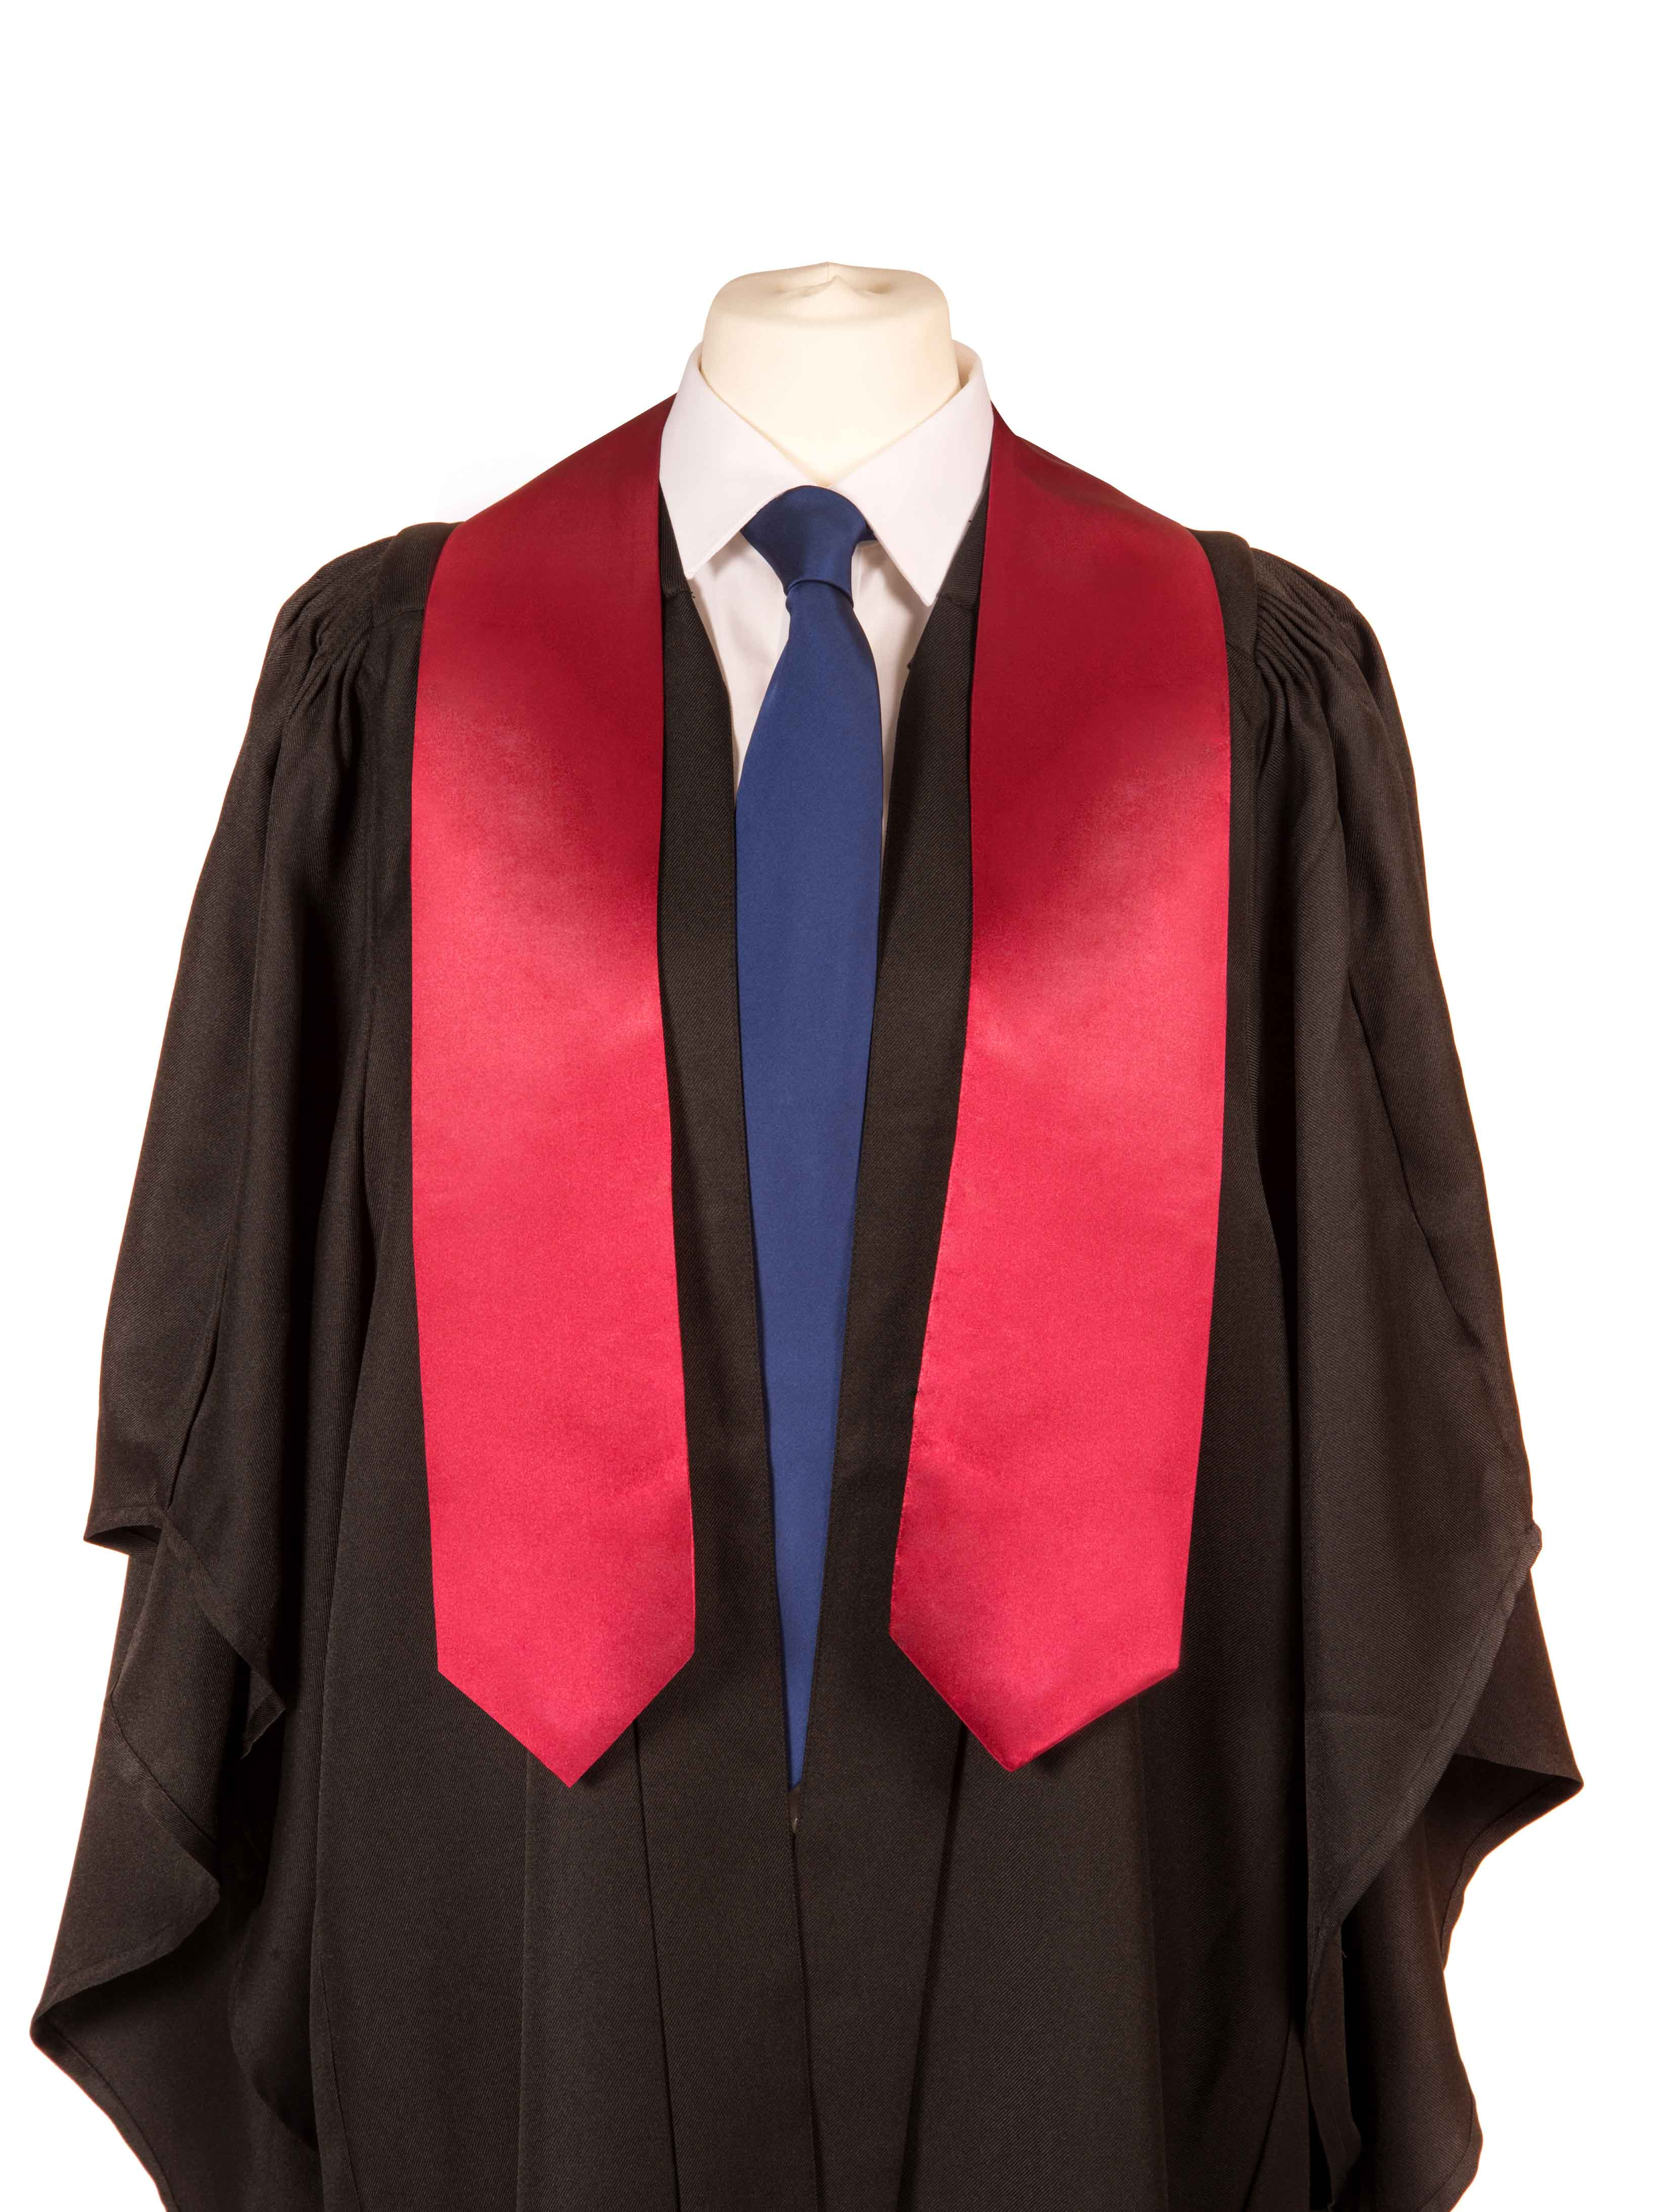 Graduation Stole Available From Graduation Attire